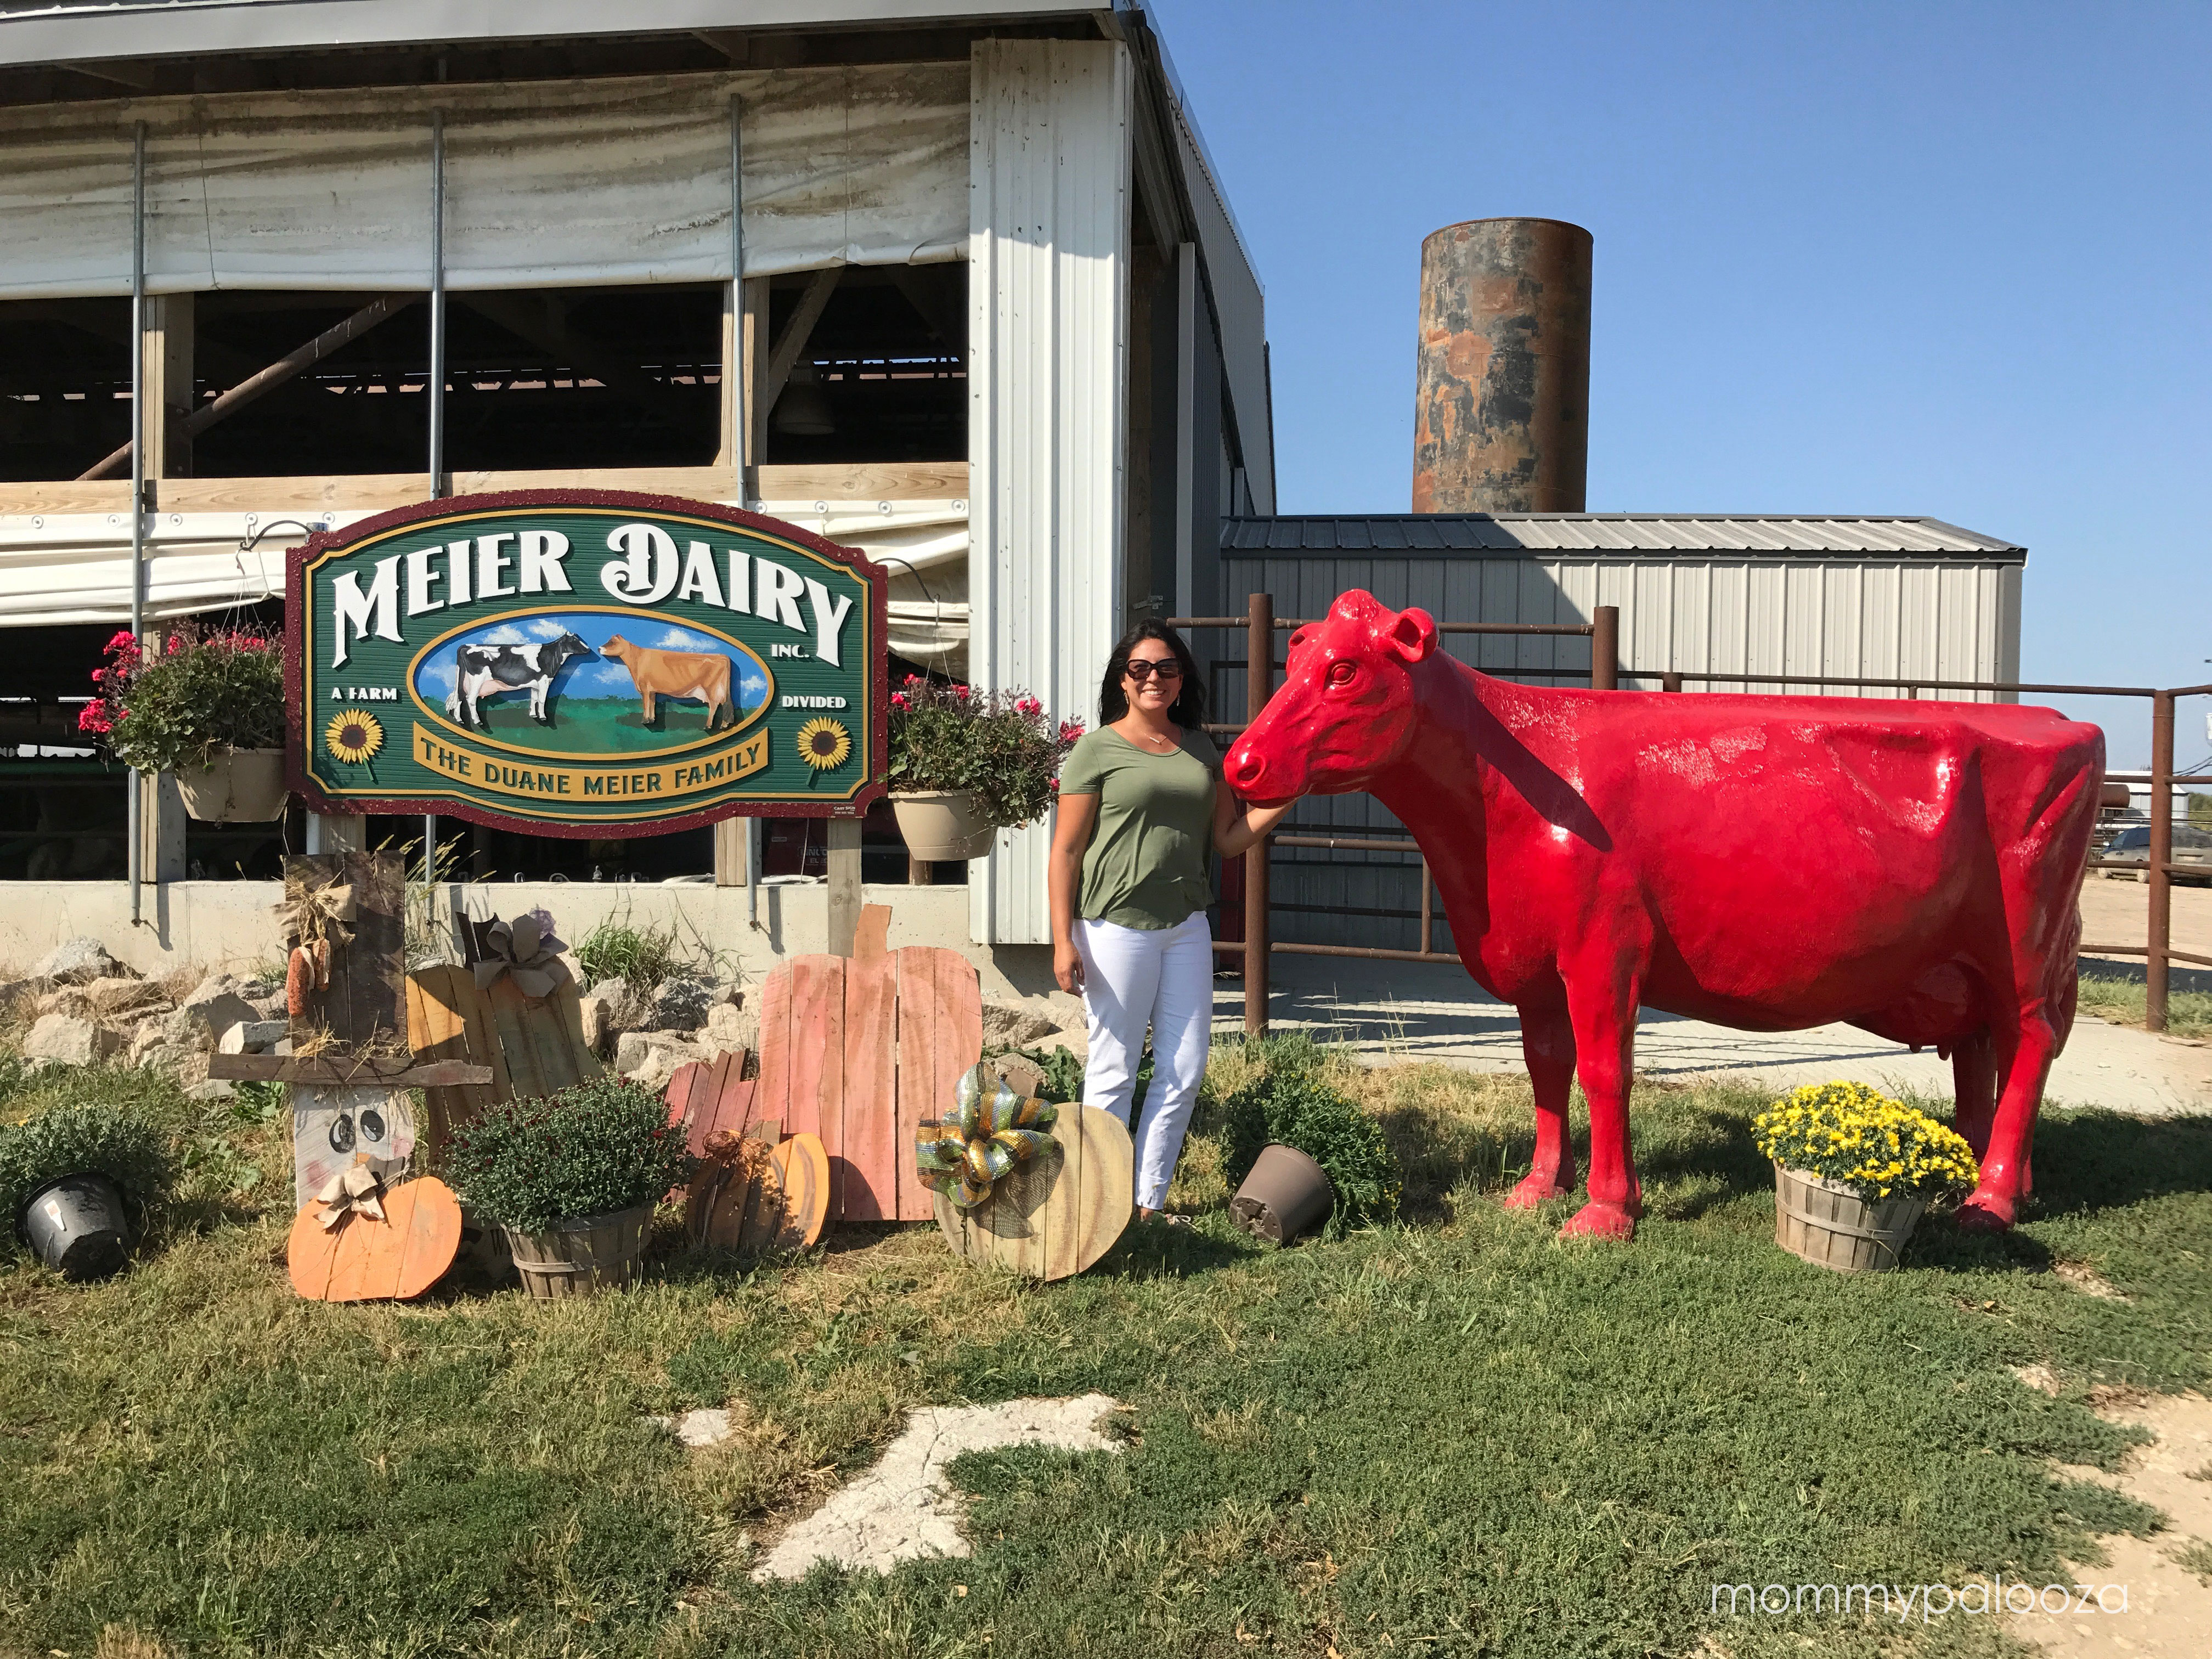 Meier Dairy - photo in front of farm with red cow